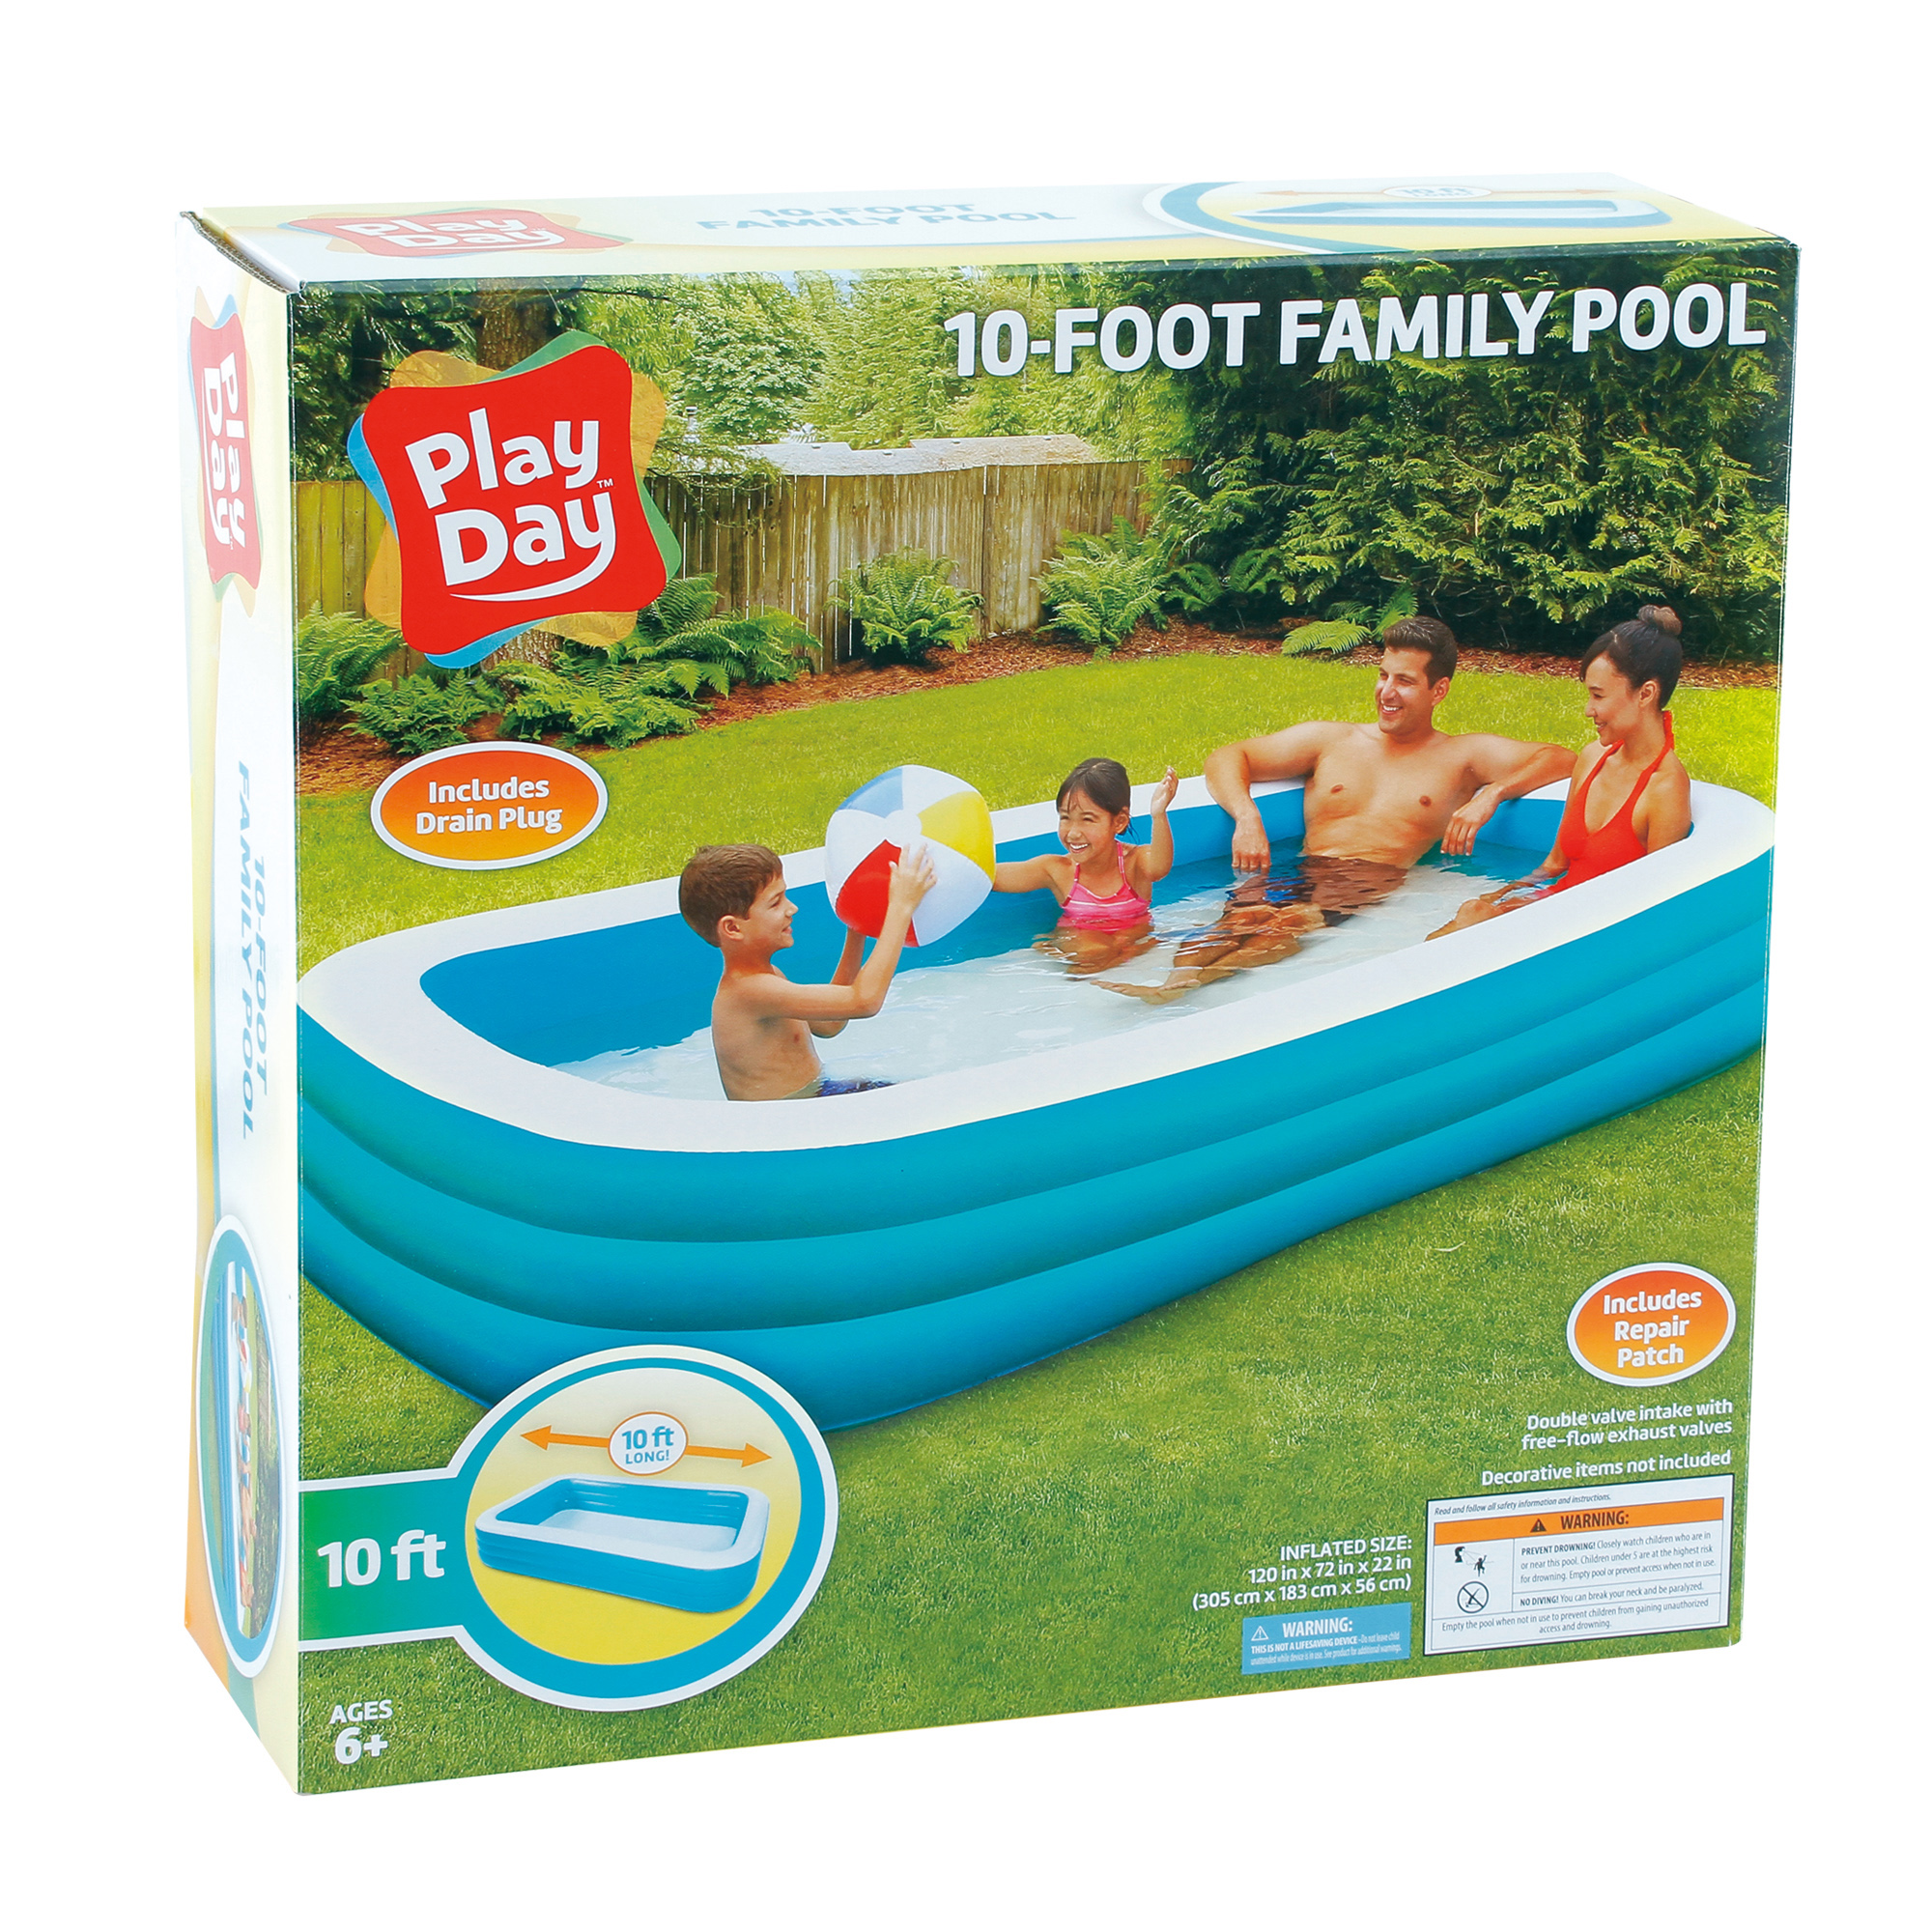 Play Day Deluxe Inflatable Family Pool 10 Walmart Com